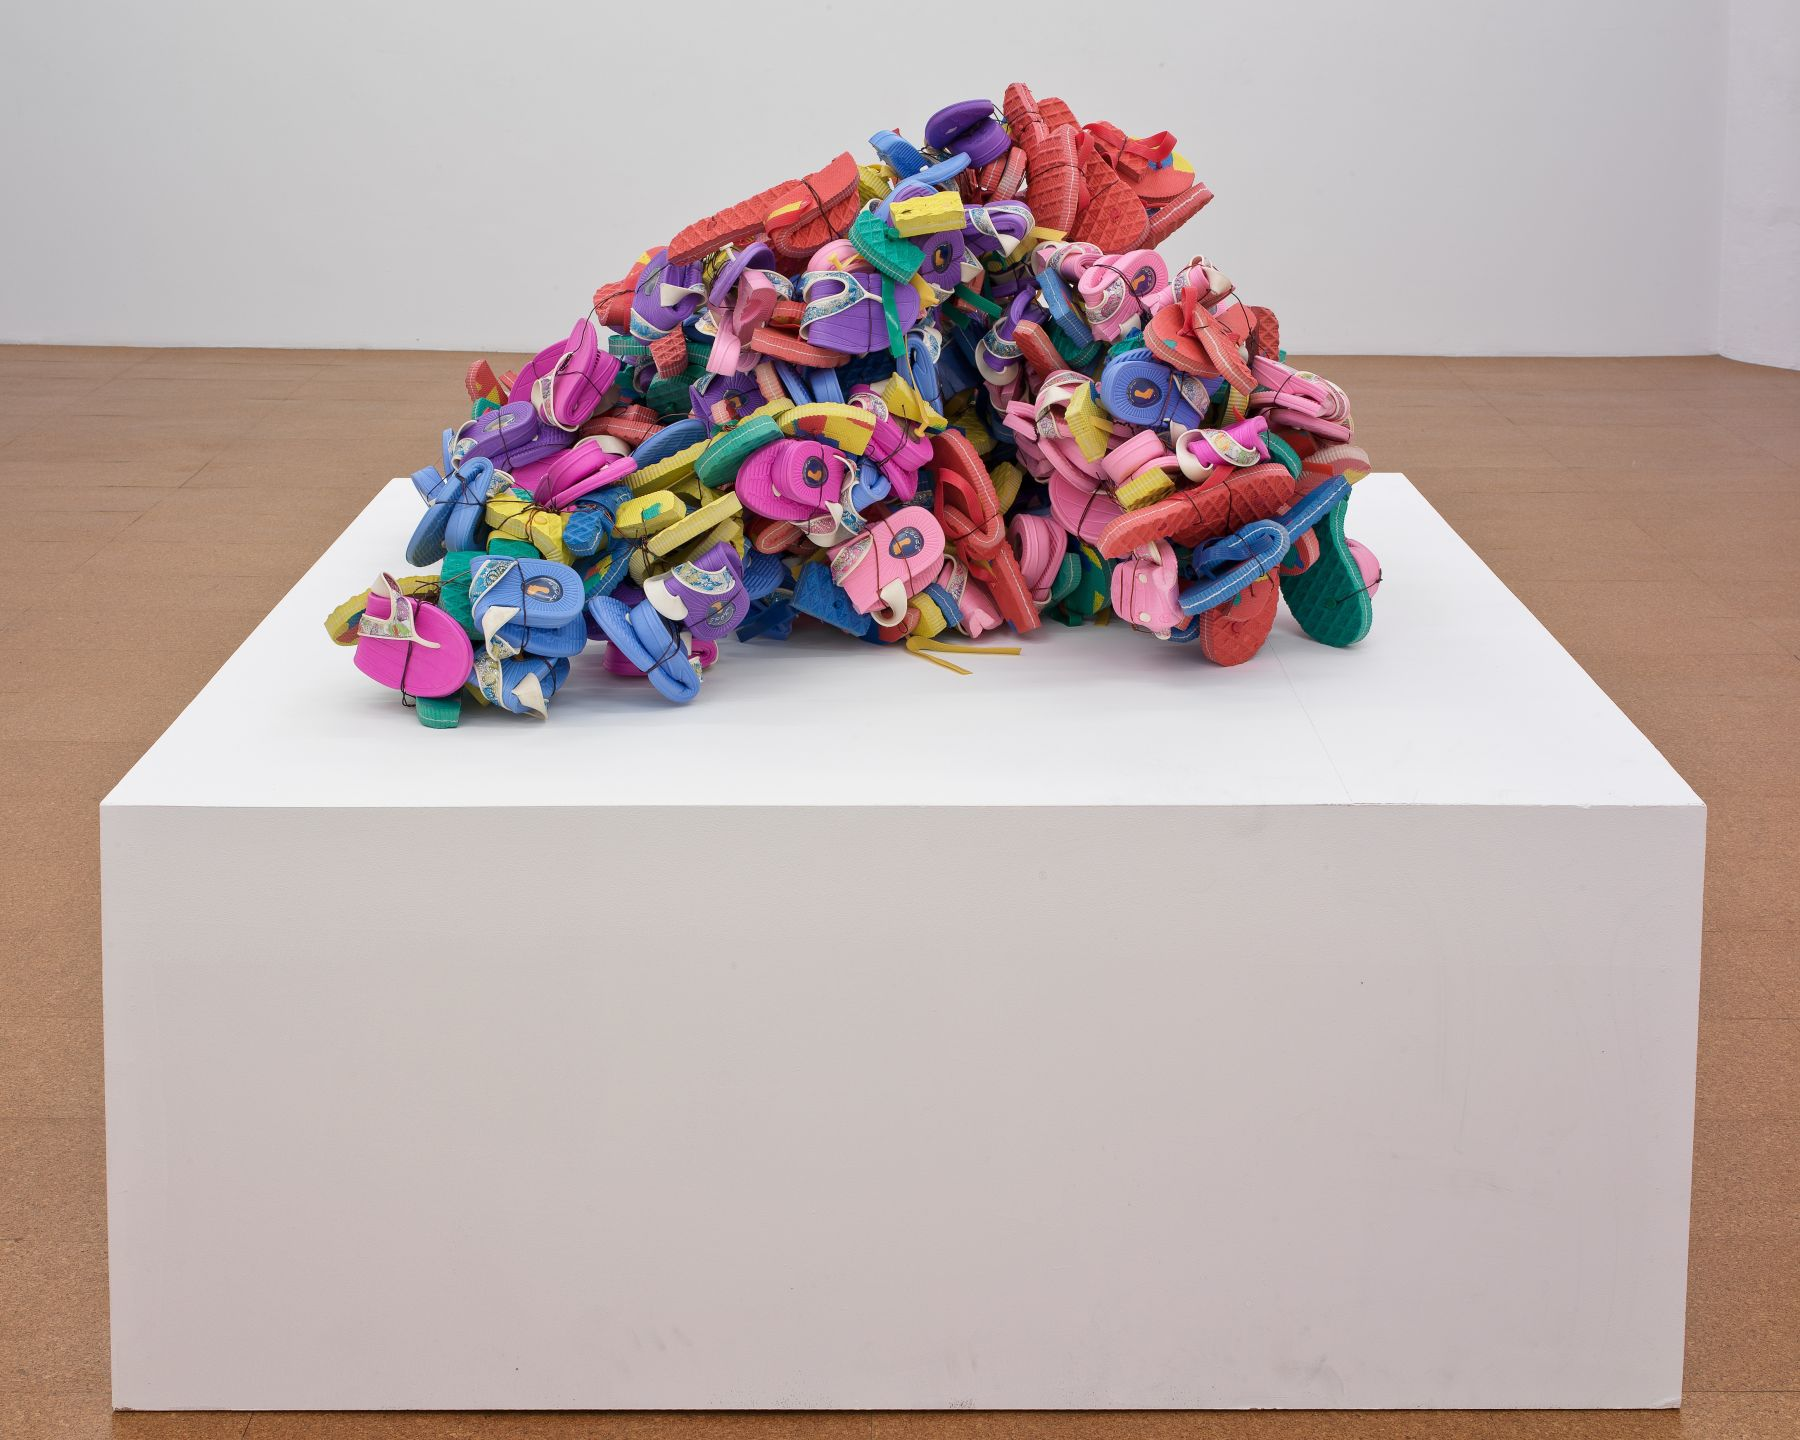 Plastic Sandals, 2008, Mixed Media